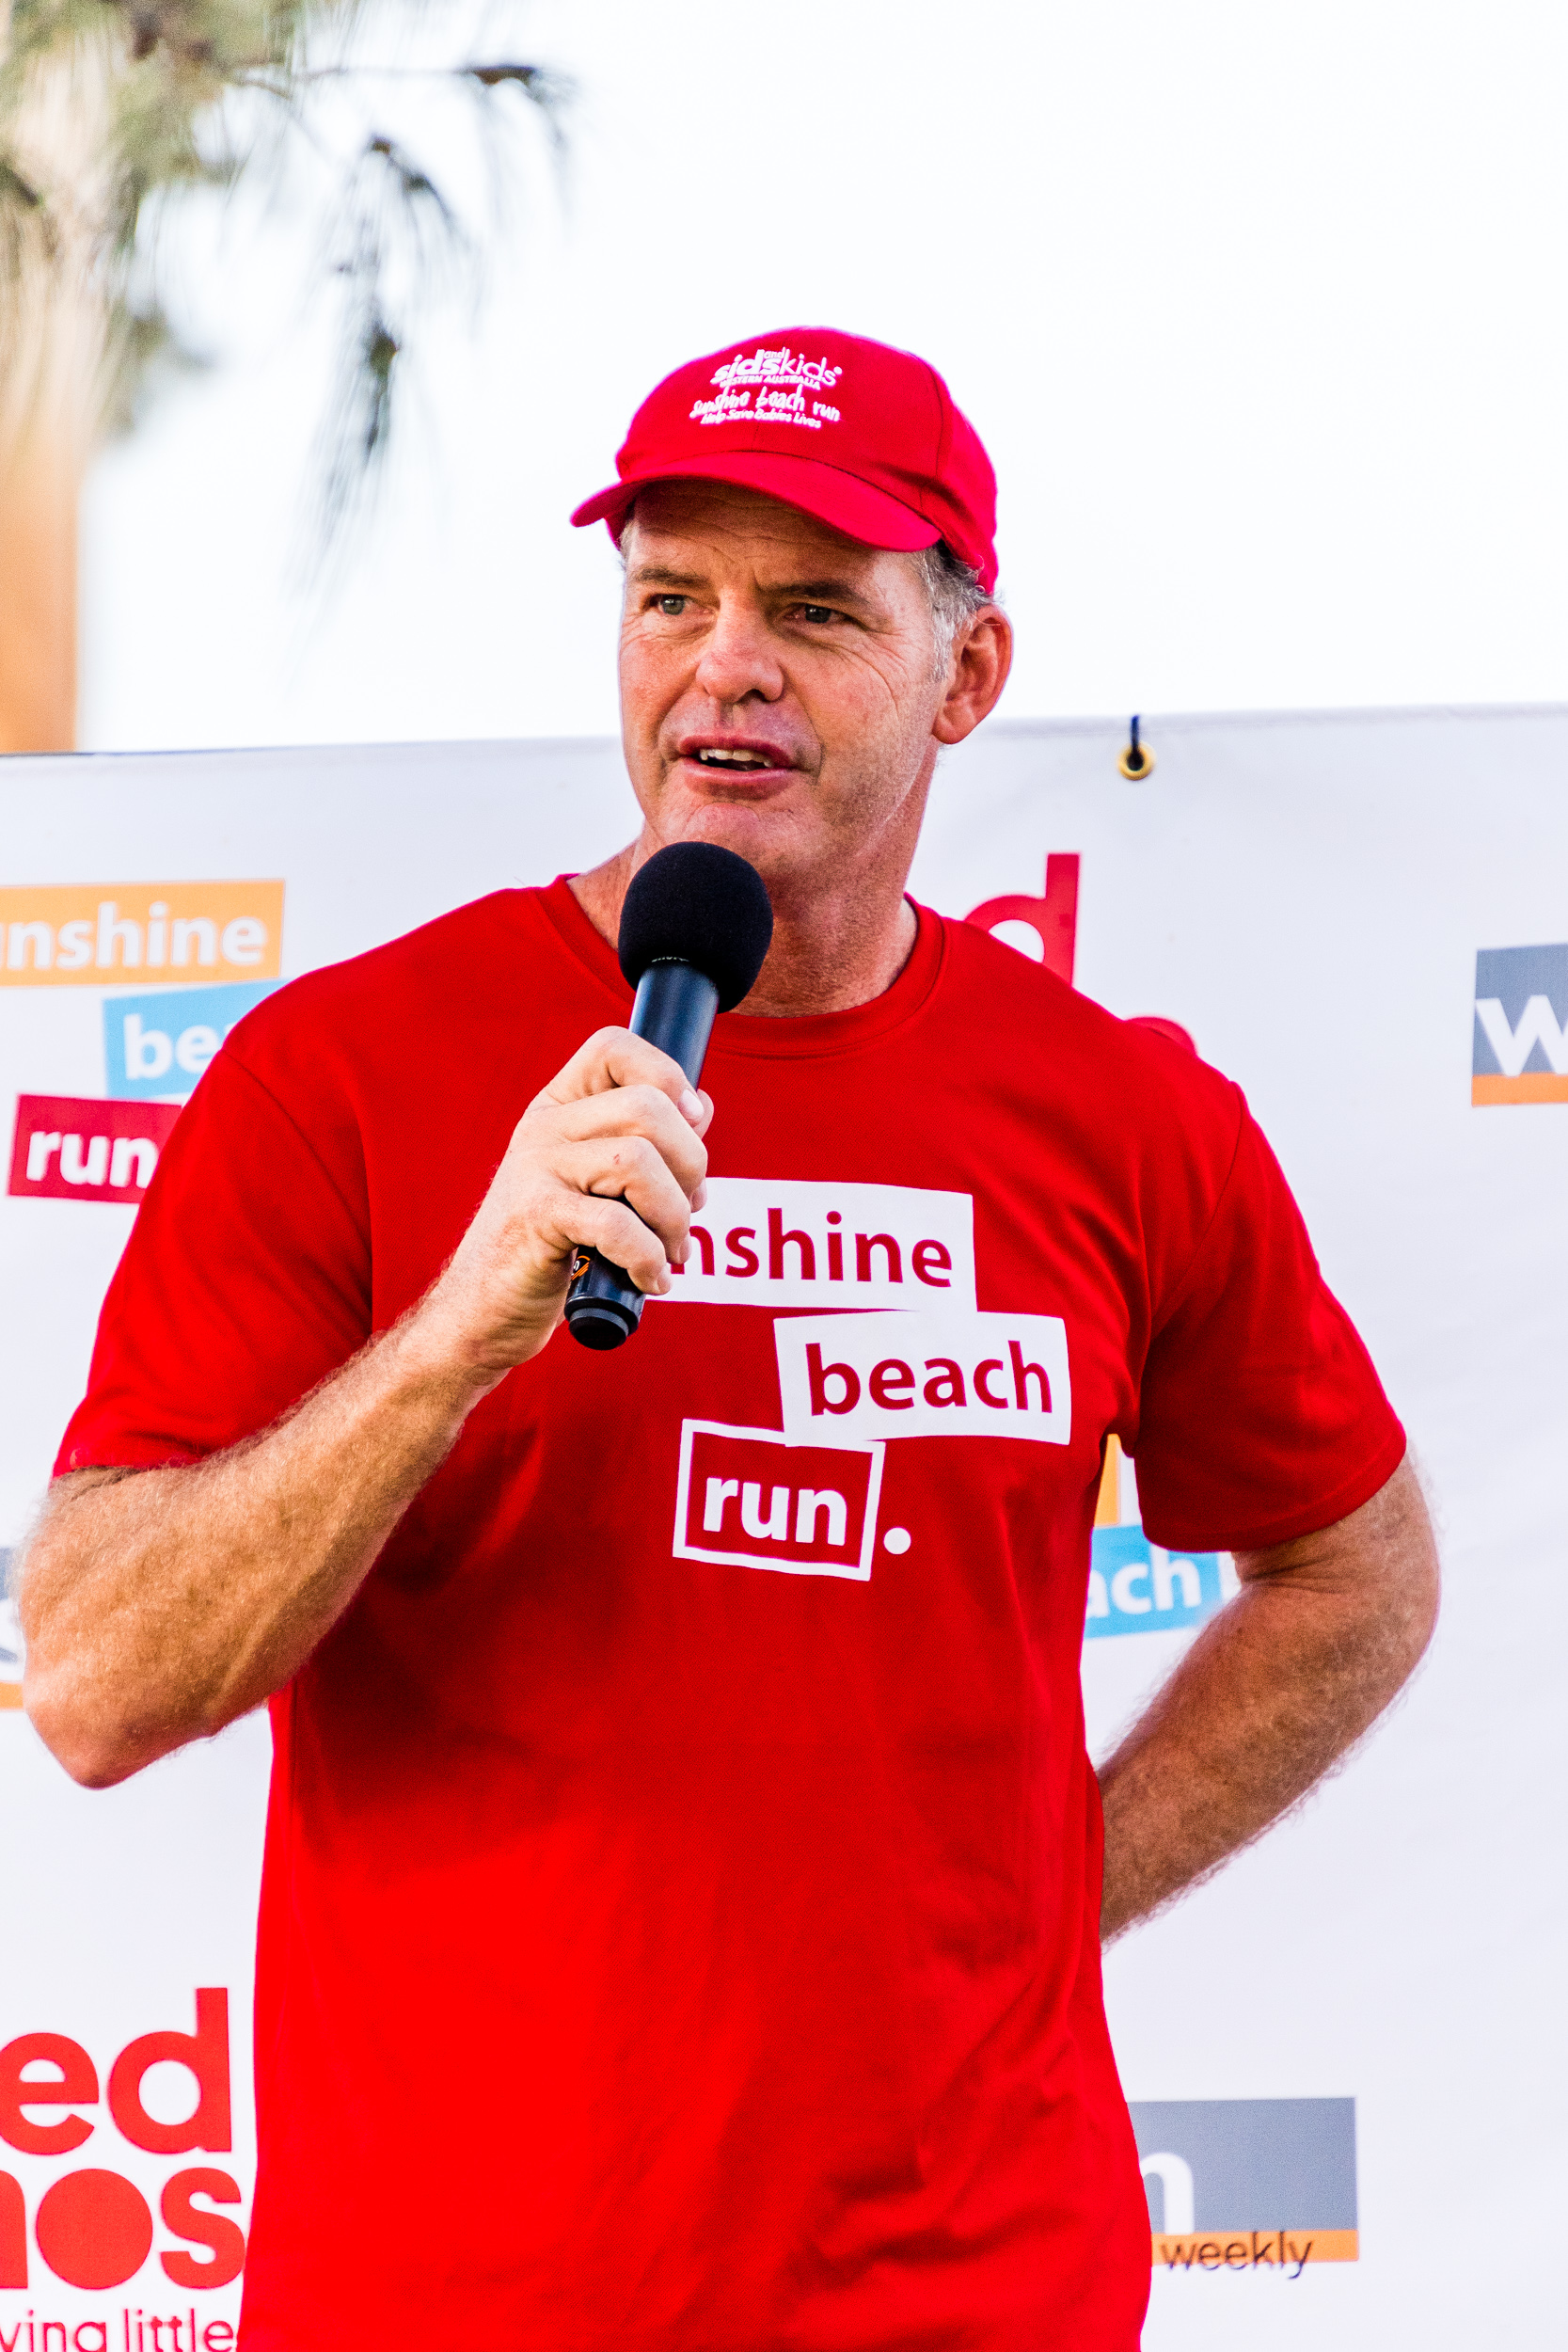 Spyrides_Kyle_Sunshine_Beach_Run_18.2.2018_DSC9101.jpg